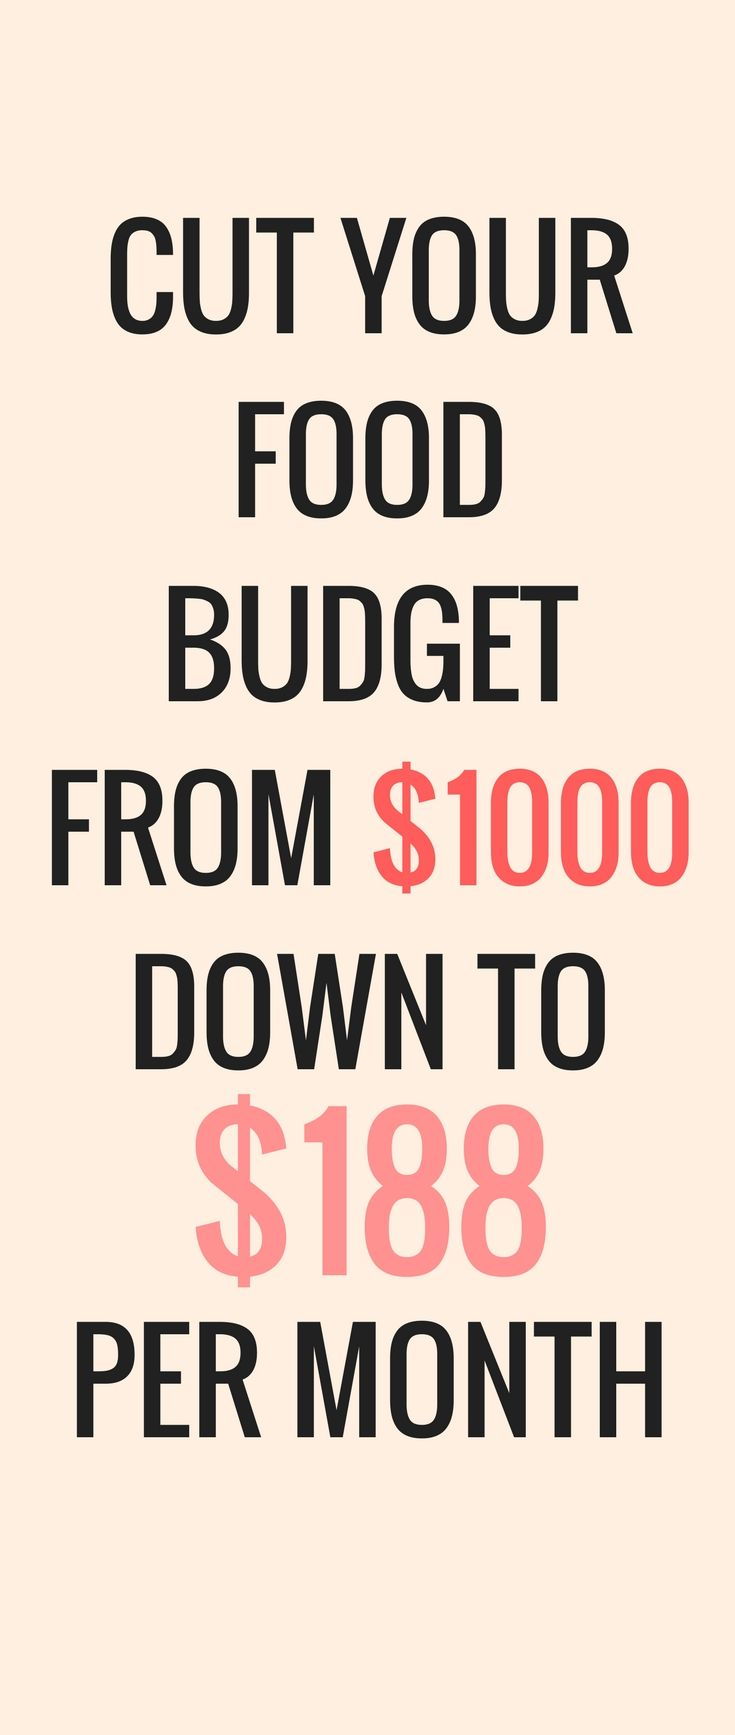 Money saving tips for moms budget. Learn very simple tricks to saving money. Get started with meal planning without going crazy. Instant download money saving worksheets that includes a meal plan where you can budget $21 per person per week on high quality food. #savingmoney #mealplanning #budget #frugal #moms affiliate link